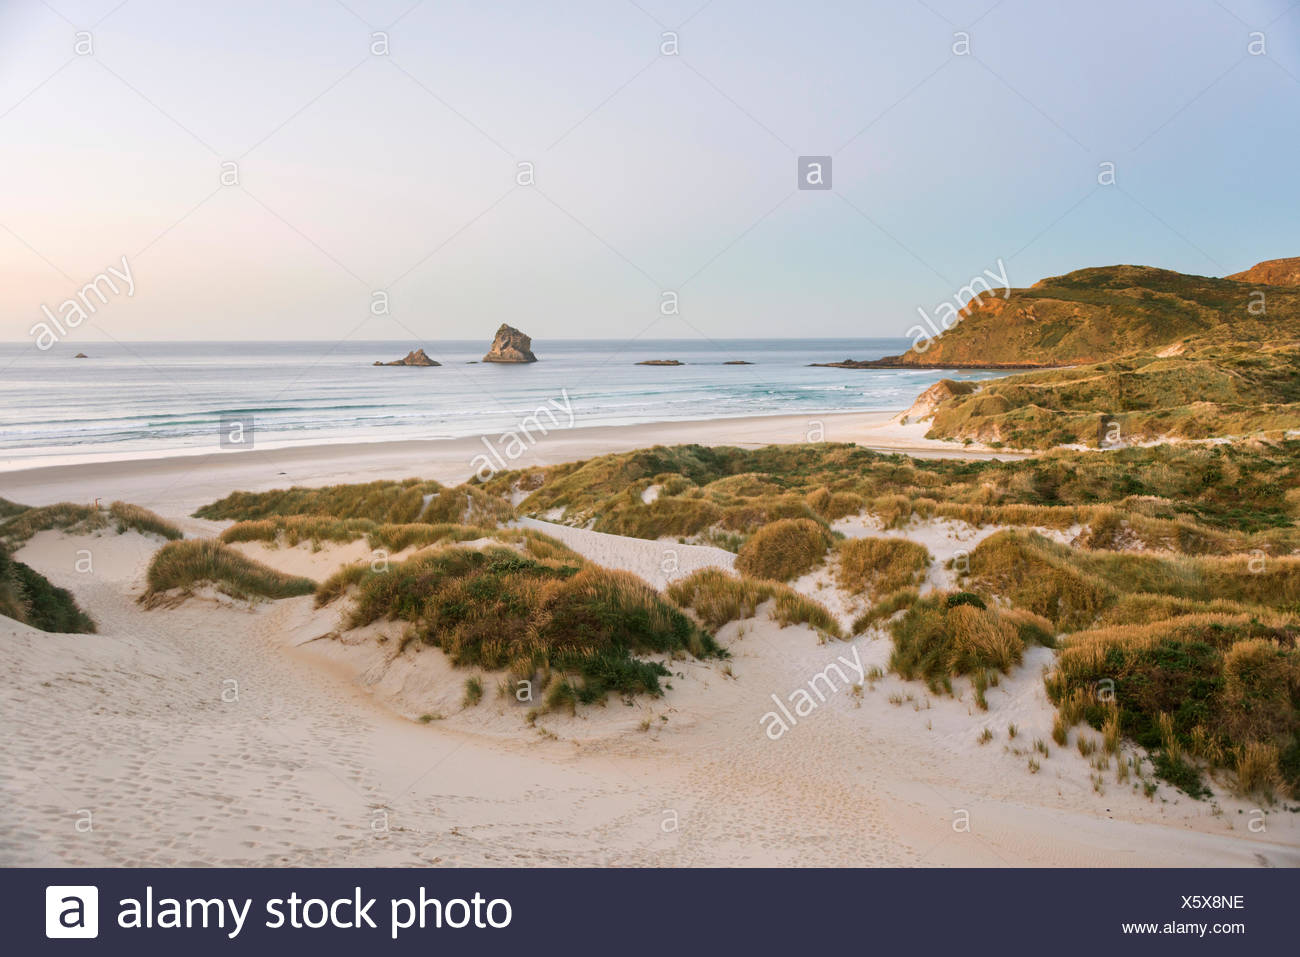 Sandy beach, dunes, Sandfly Bay, Dunedin, Otago, Otago Peninsula, Southland, New Zealand - Stock Image